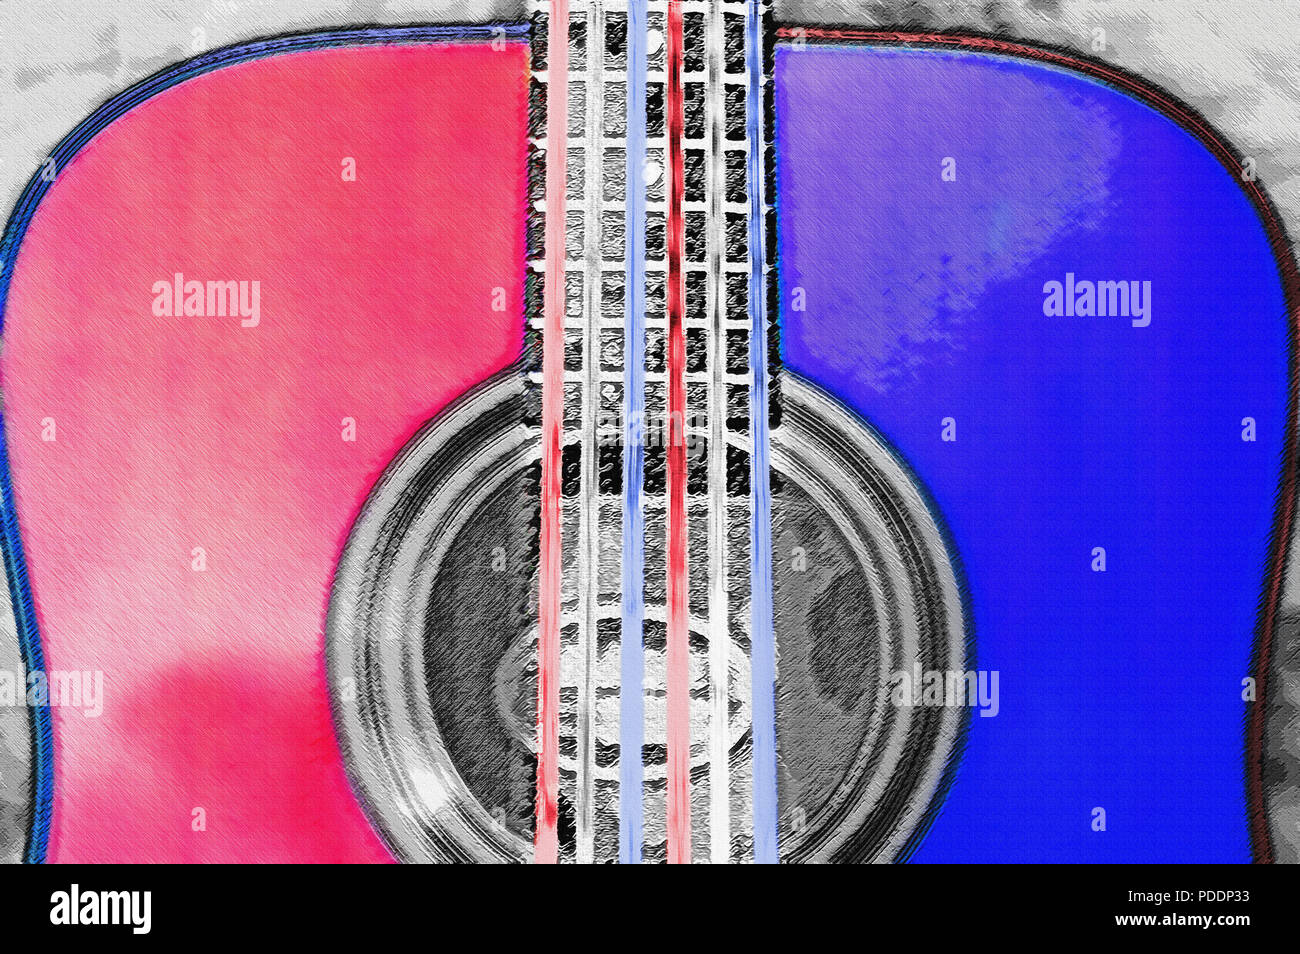 A Close View of the Body of an Acoustic Guitar. You Can See the Rich Color and Grain of the Polished Wood, its Graceful Contours and Fine Craftsmanshi - Stock Image